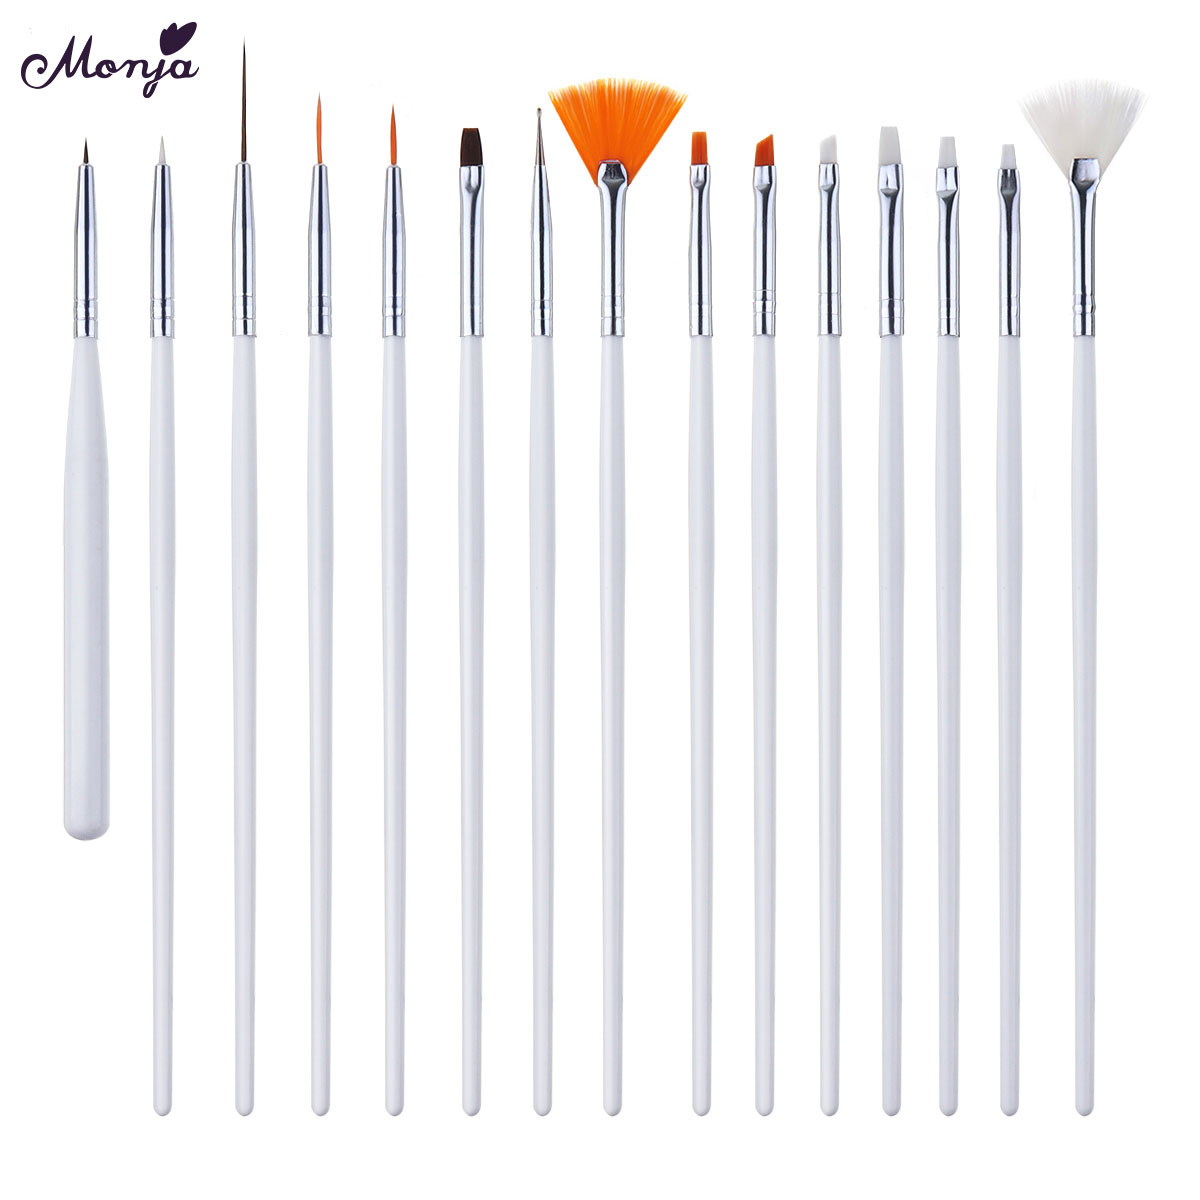 Monja Nail Art Brush With French Design Lines Made With Metal And Fiber Hair Material For Nail Art Salon Tools 3